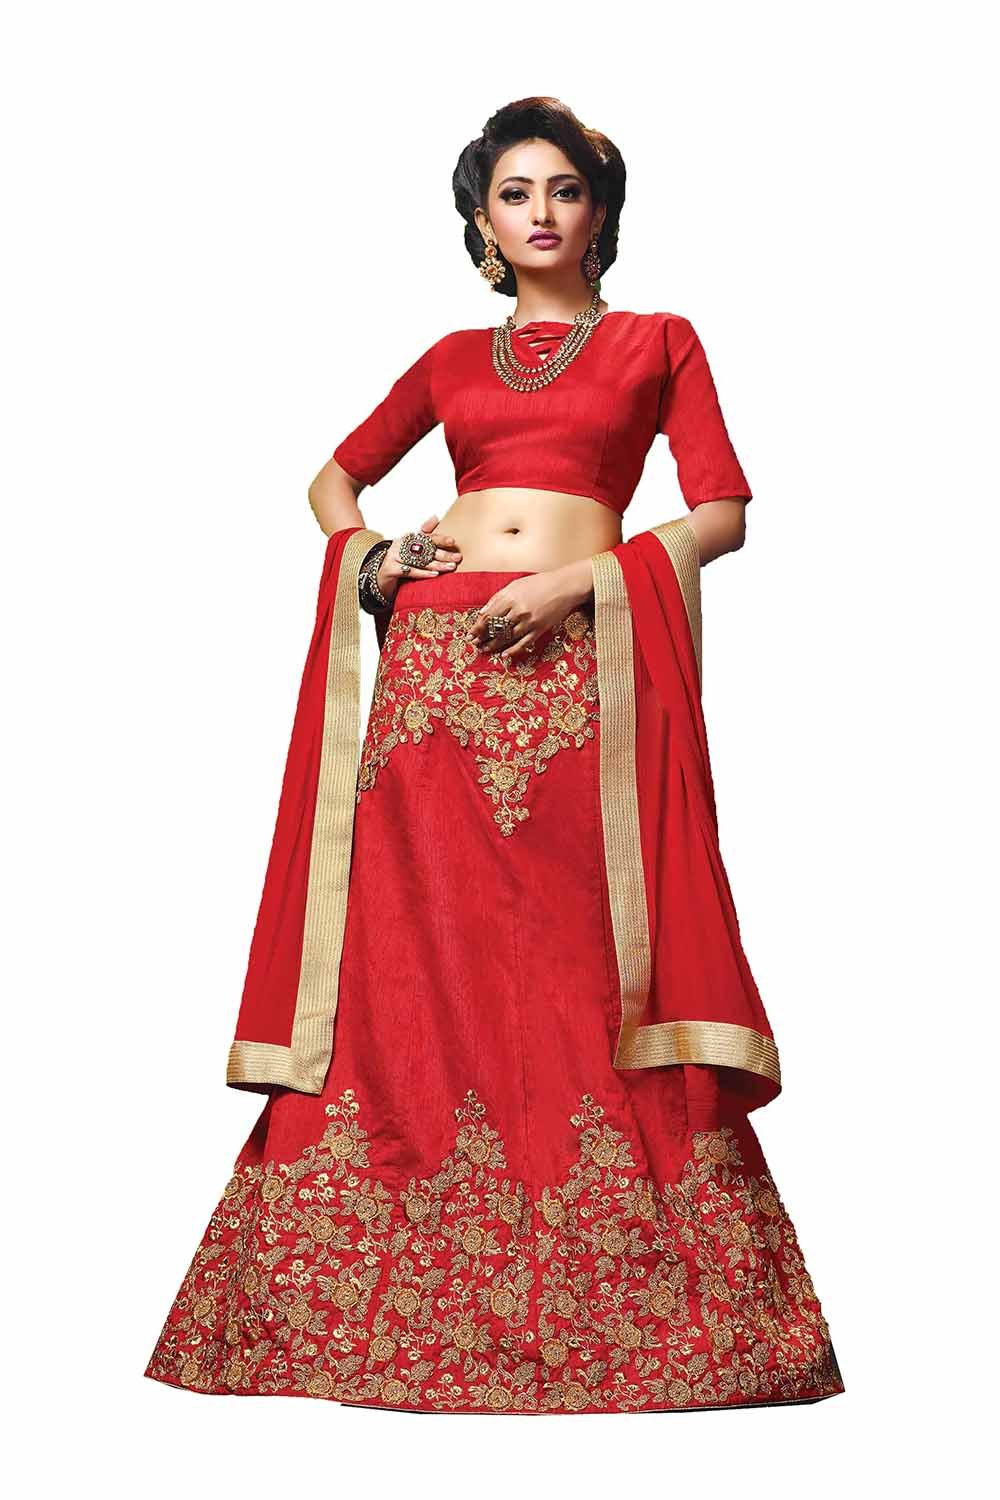 PCC Indian Women Designer Wedding red Lehenga Choli K-6410-59549